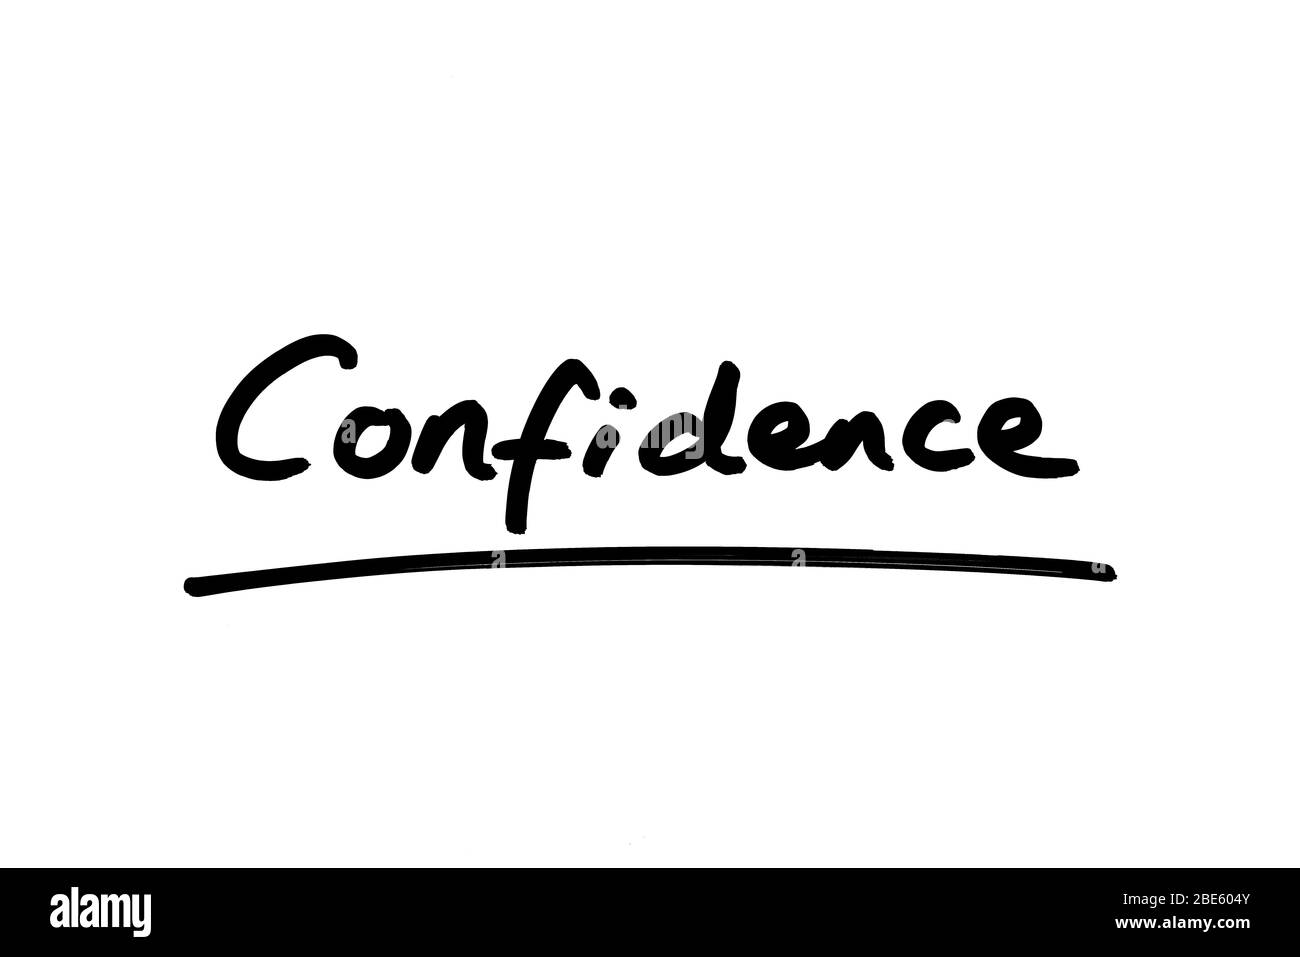 Confidence handwritten on a white background. Stock Photo